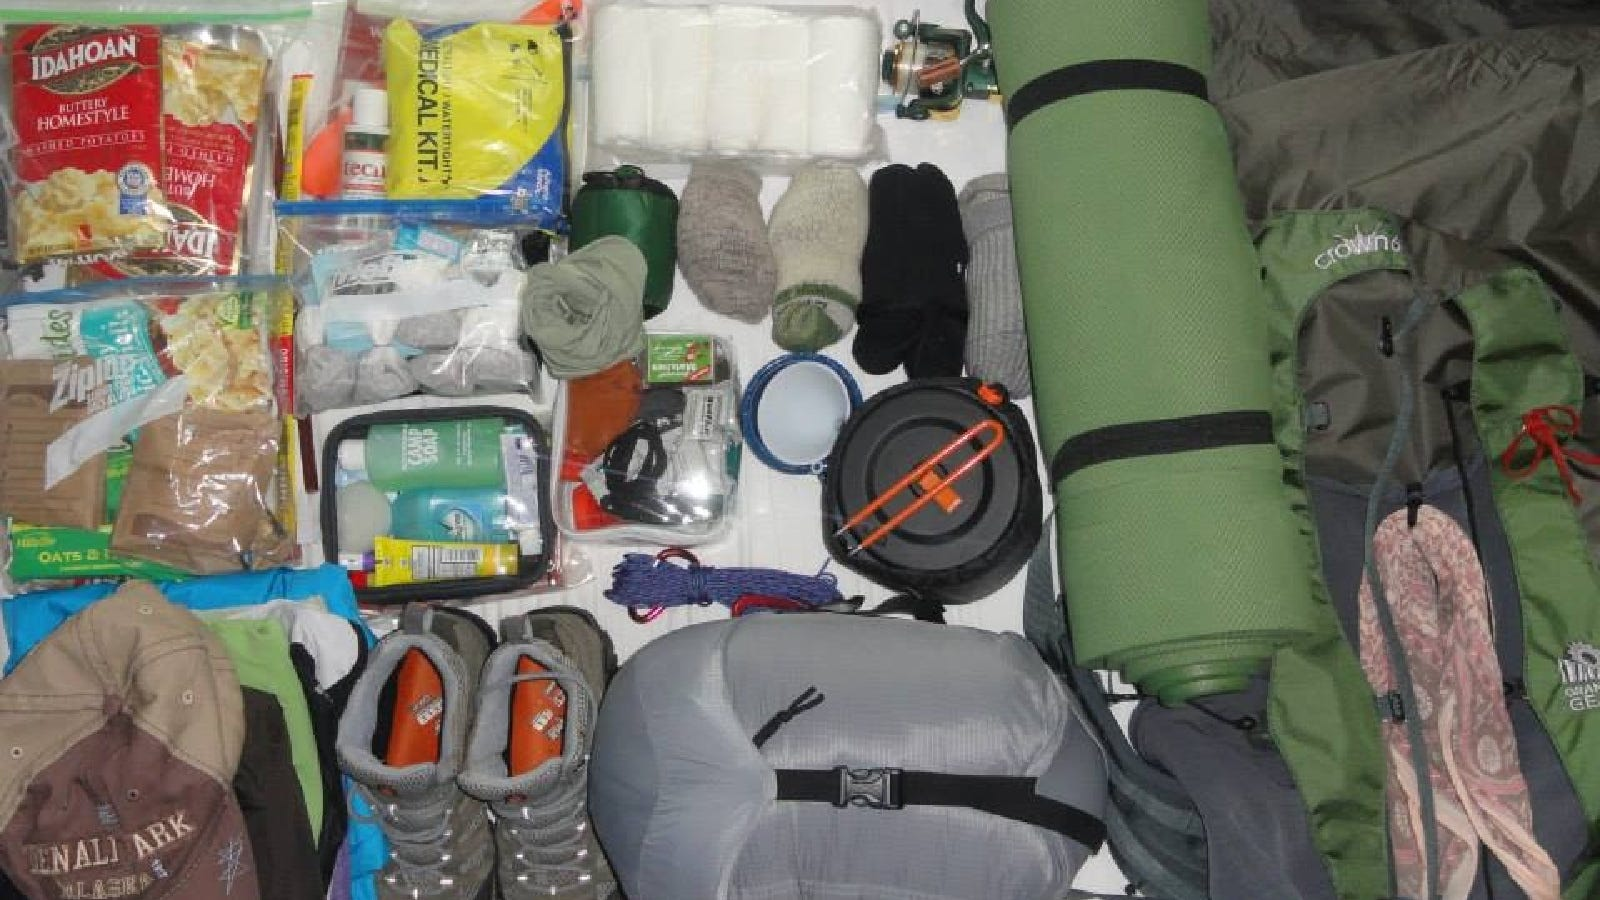 Various gear laid out on the bed before a seven day backpacking trip on the Appalachian trail.